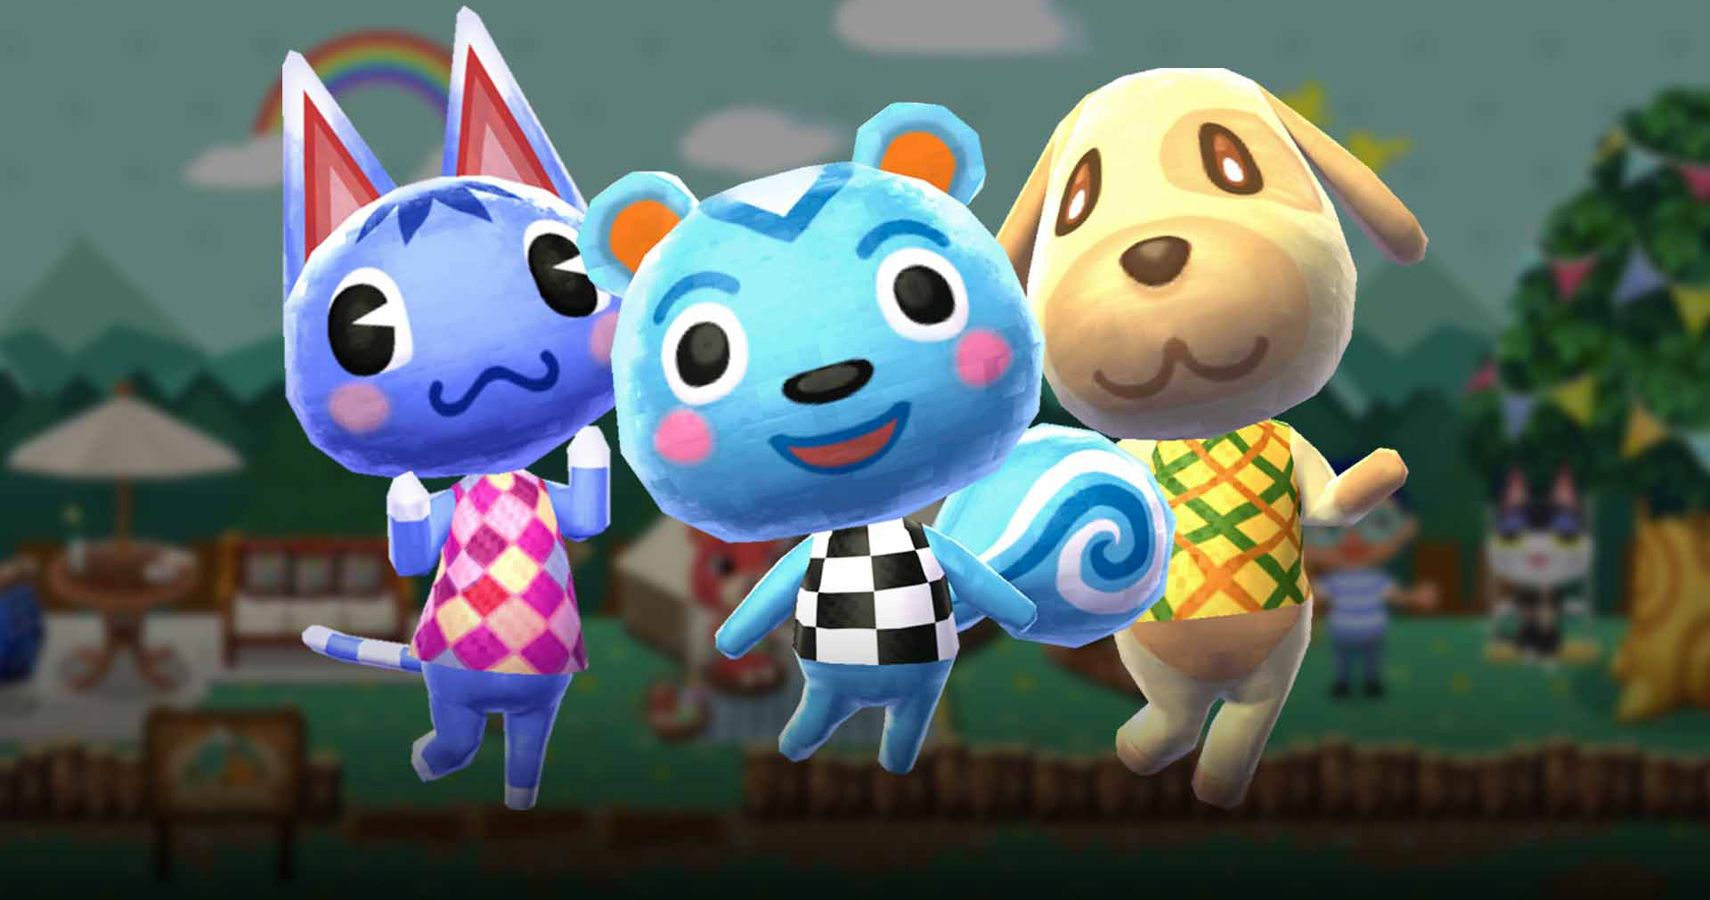 The 15 Weirdest Villagers From Animal Crossing Ranked Thegamer